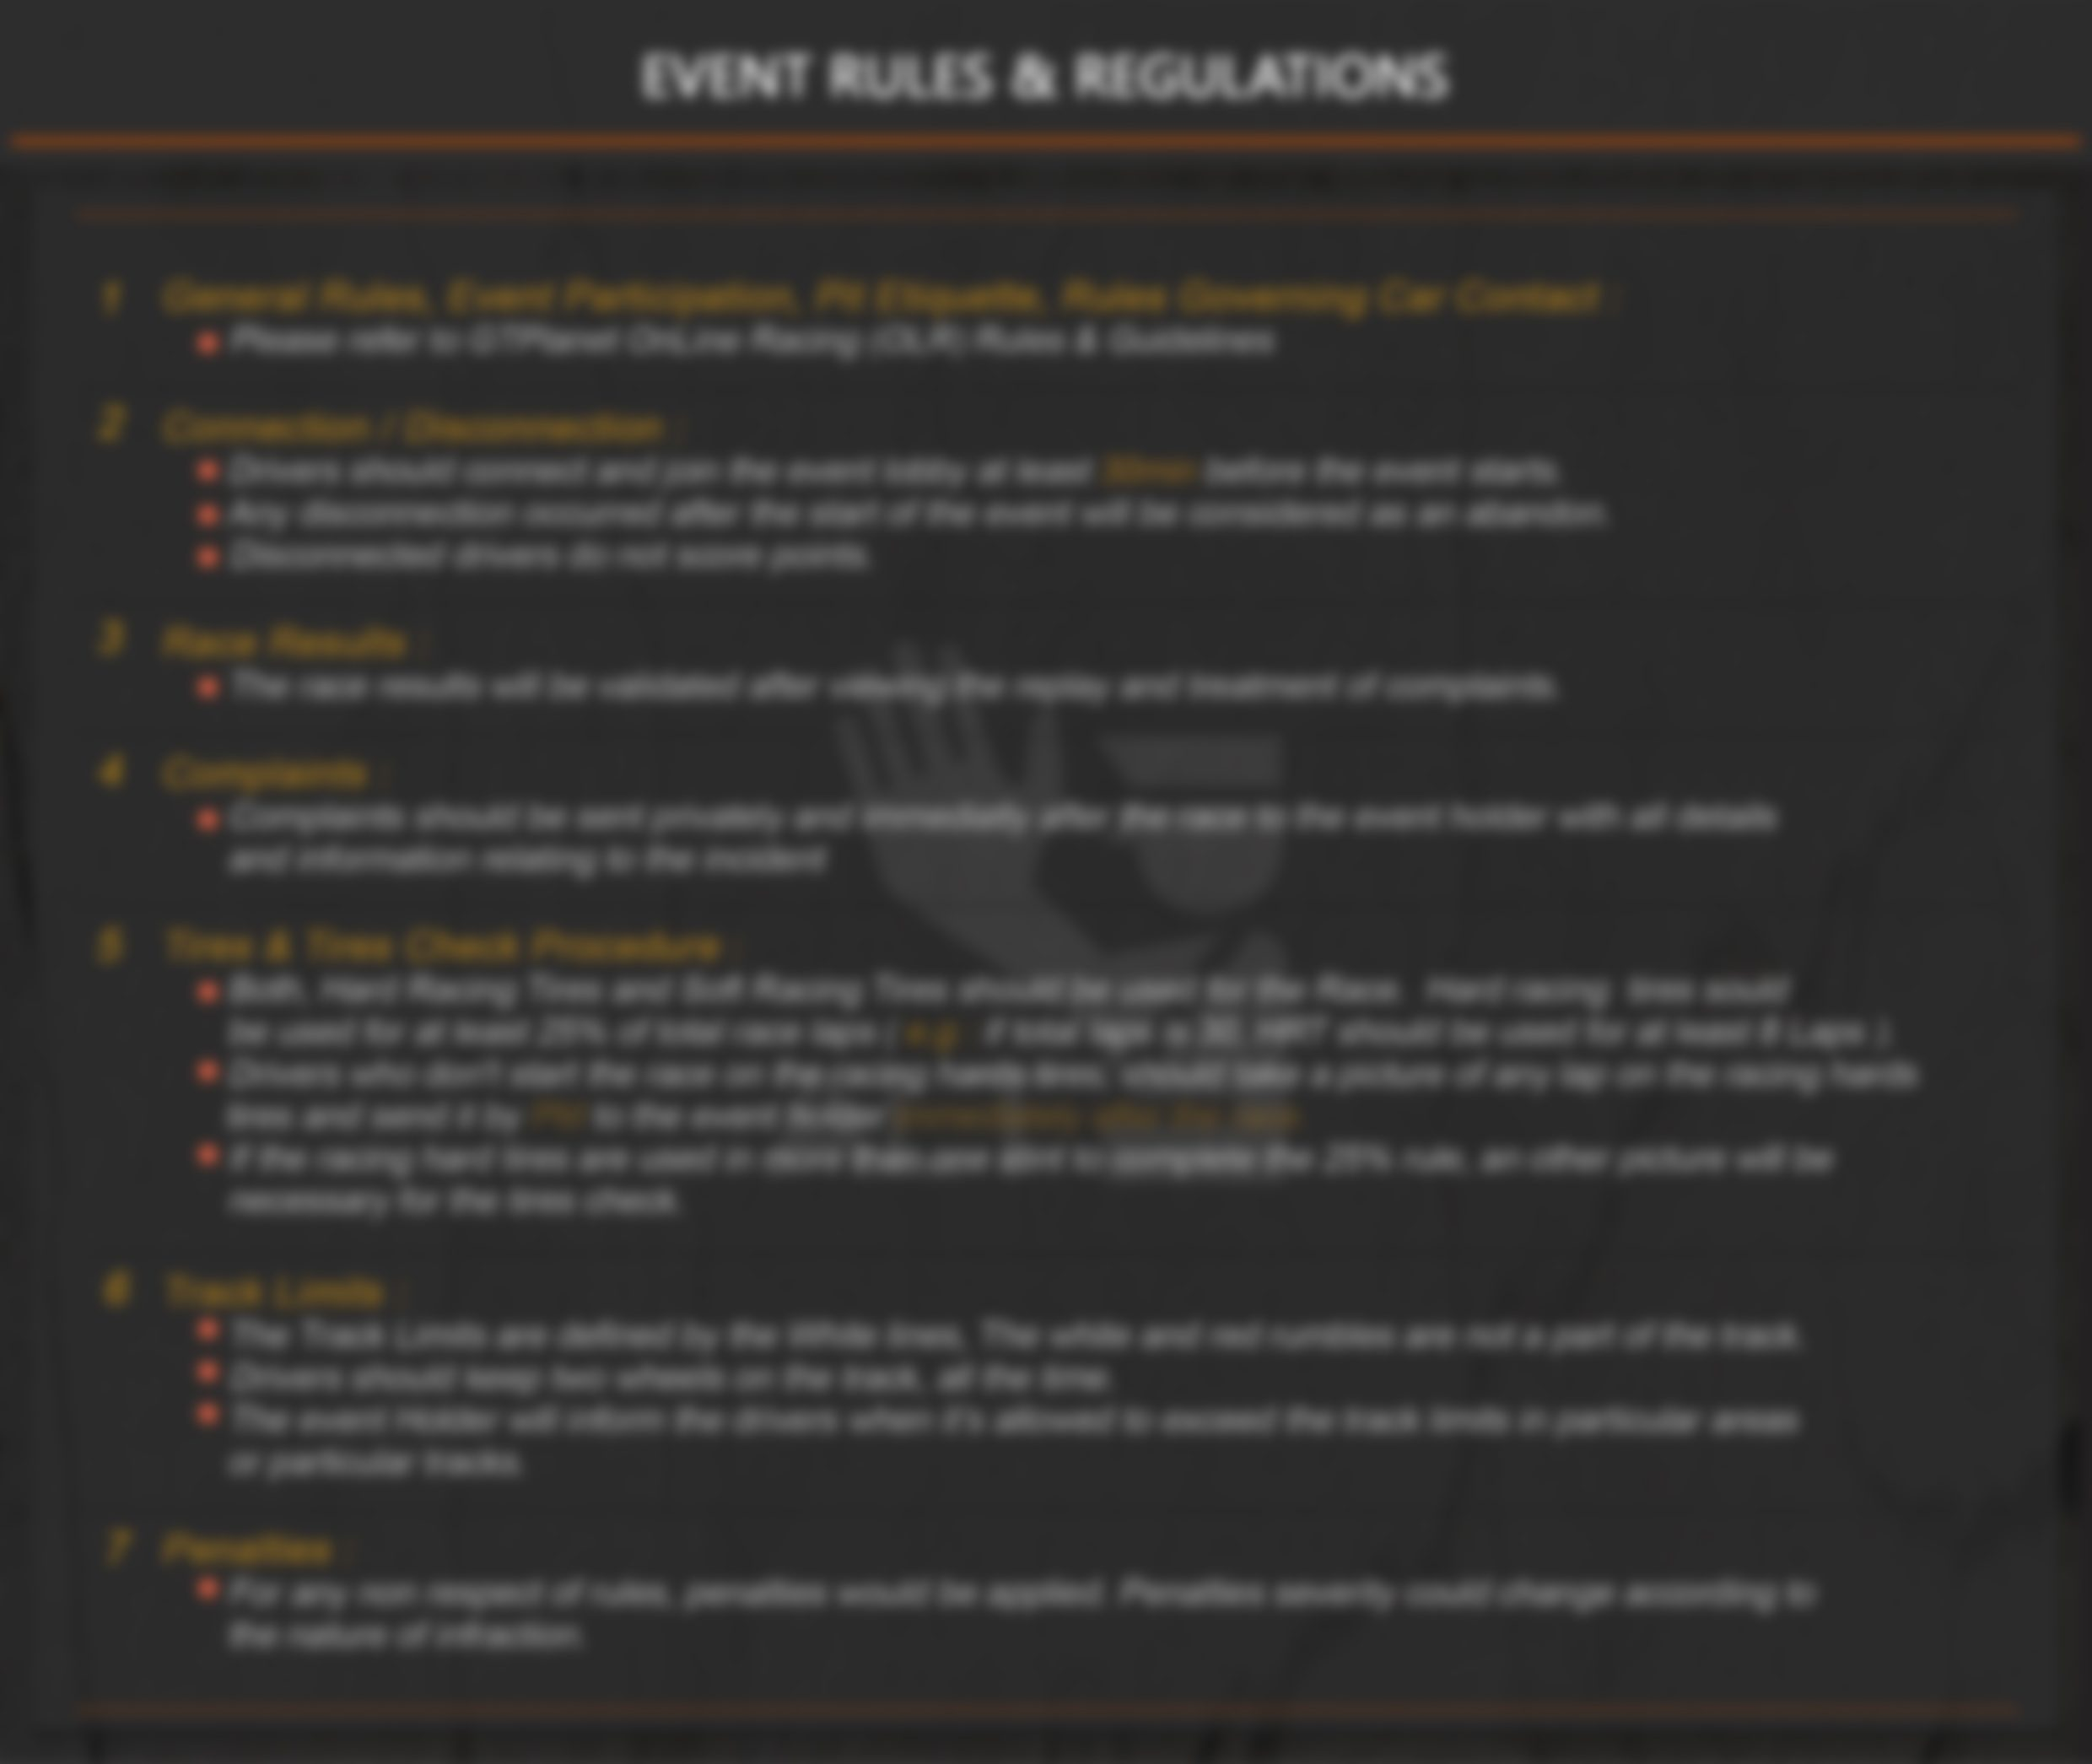 clio cup Rules and Regs 1.jpg